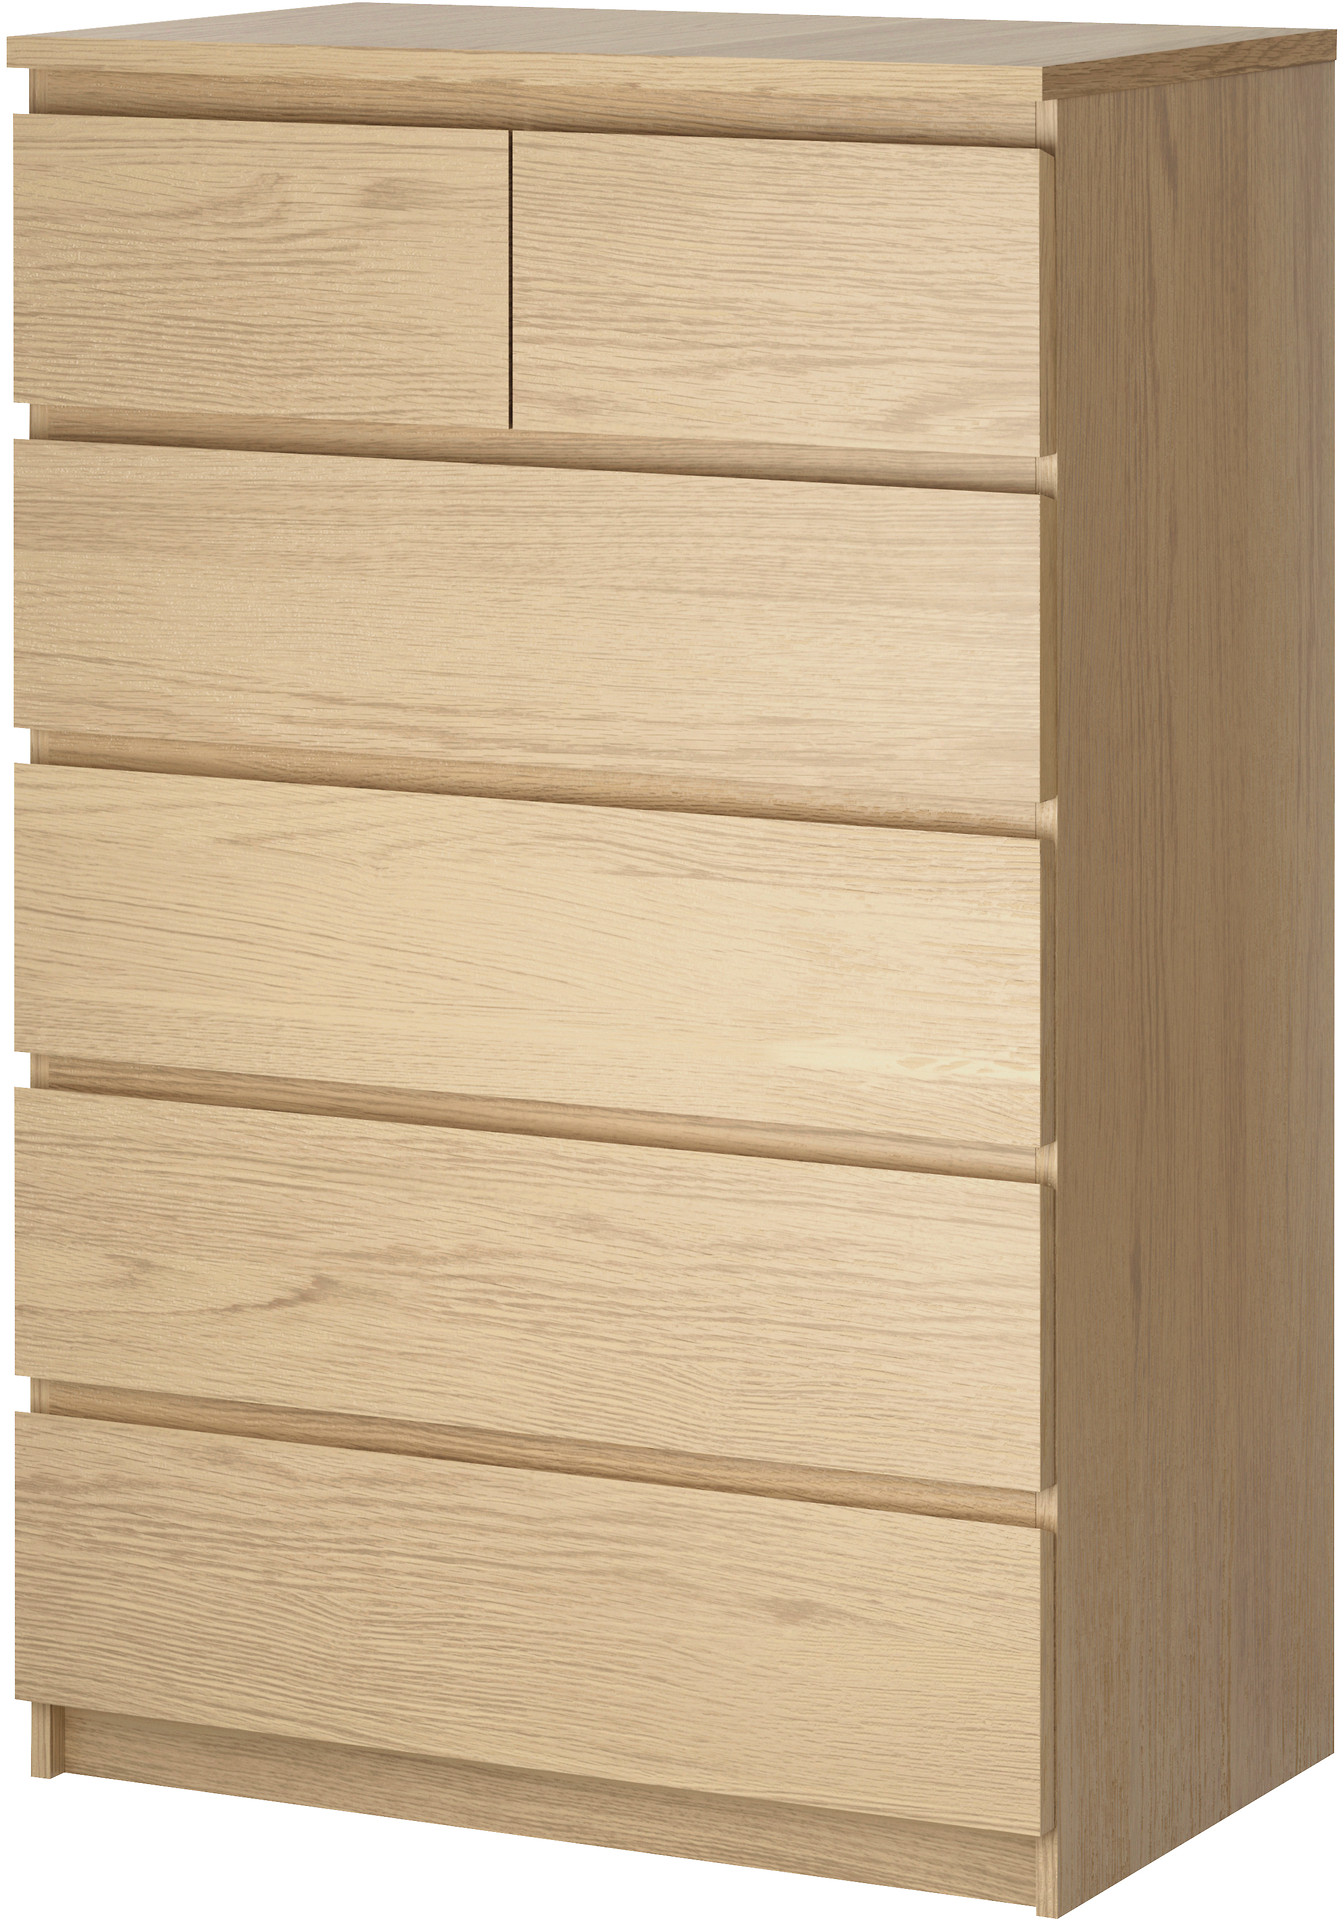 MALM 6-drawer chest - white stained oak veneer - IKEA